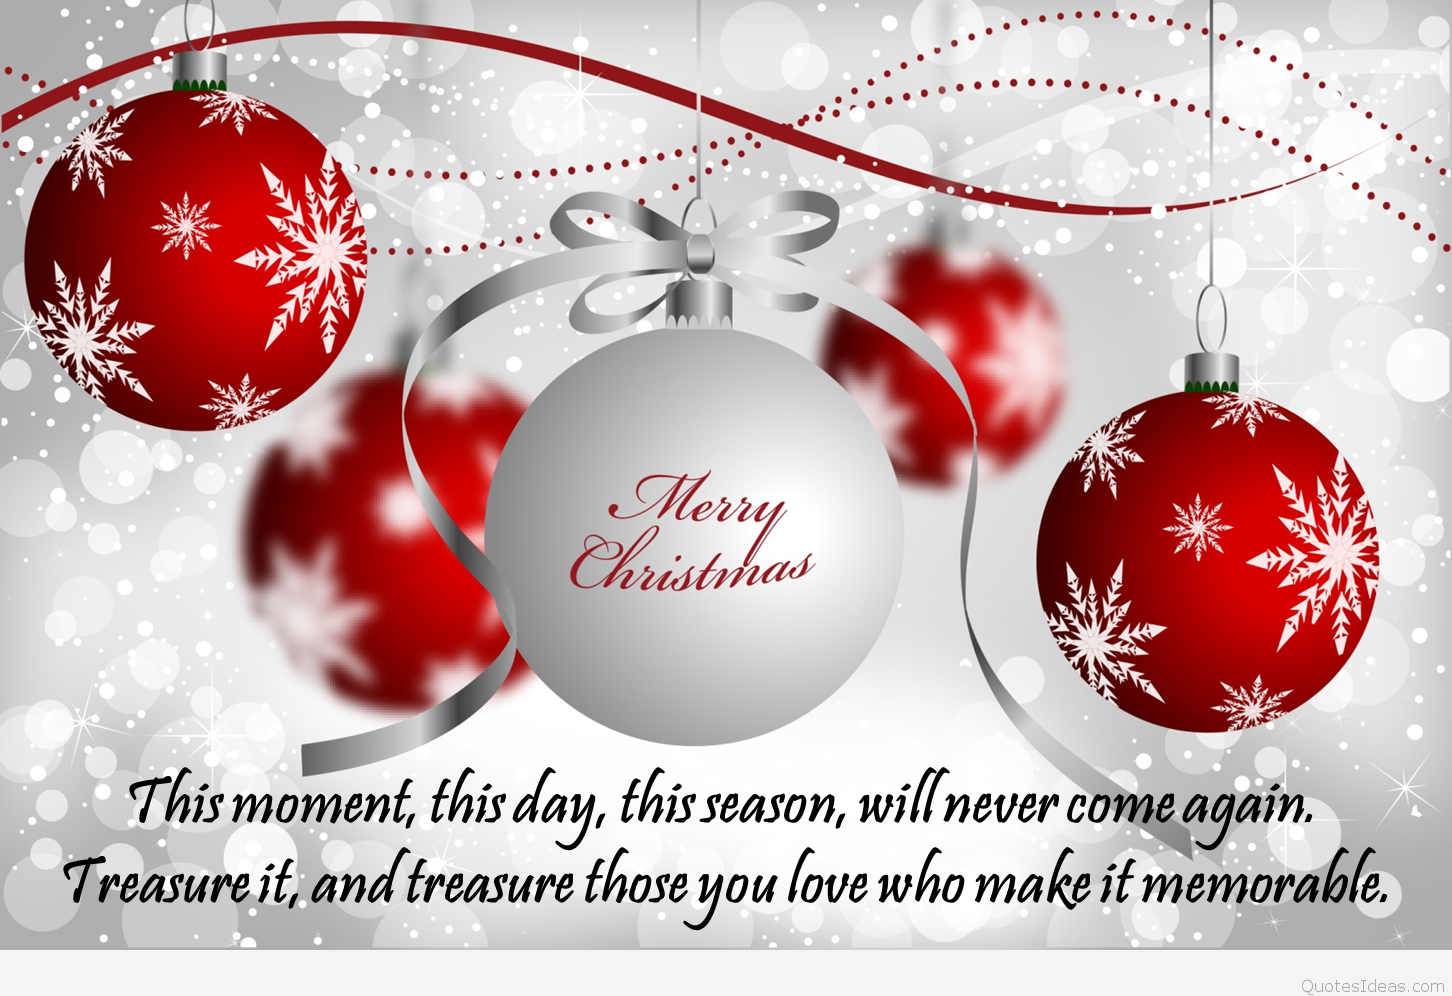 merry-christmas-quotes-20